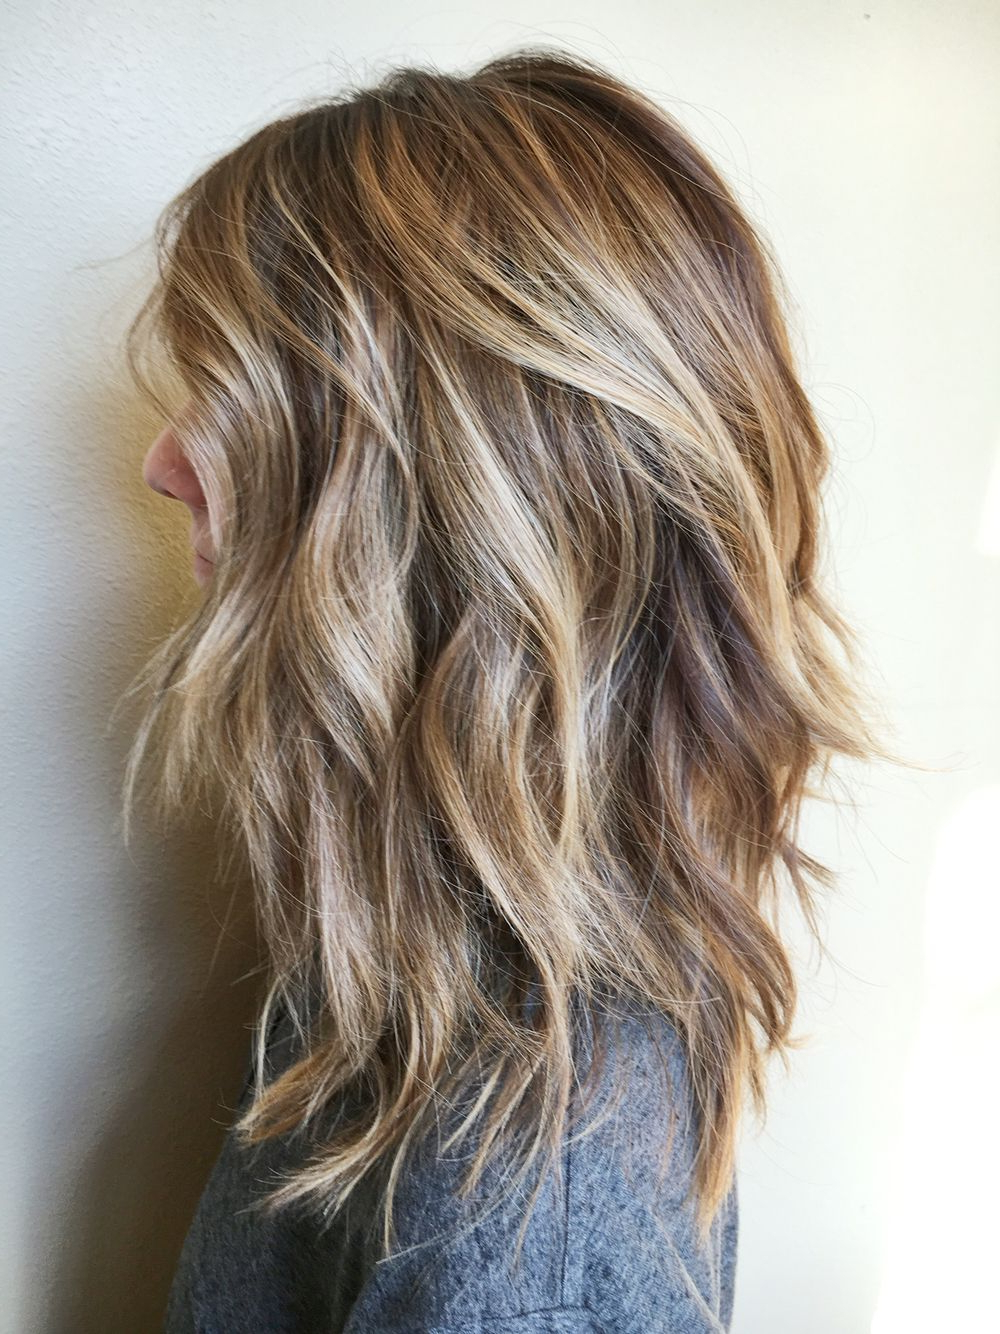 Dostyle | Beauté | Pinterest | Balayage, Messy Curls And Medium With Long Hair With Short Layers Hairstyles (View 17 of 25)